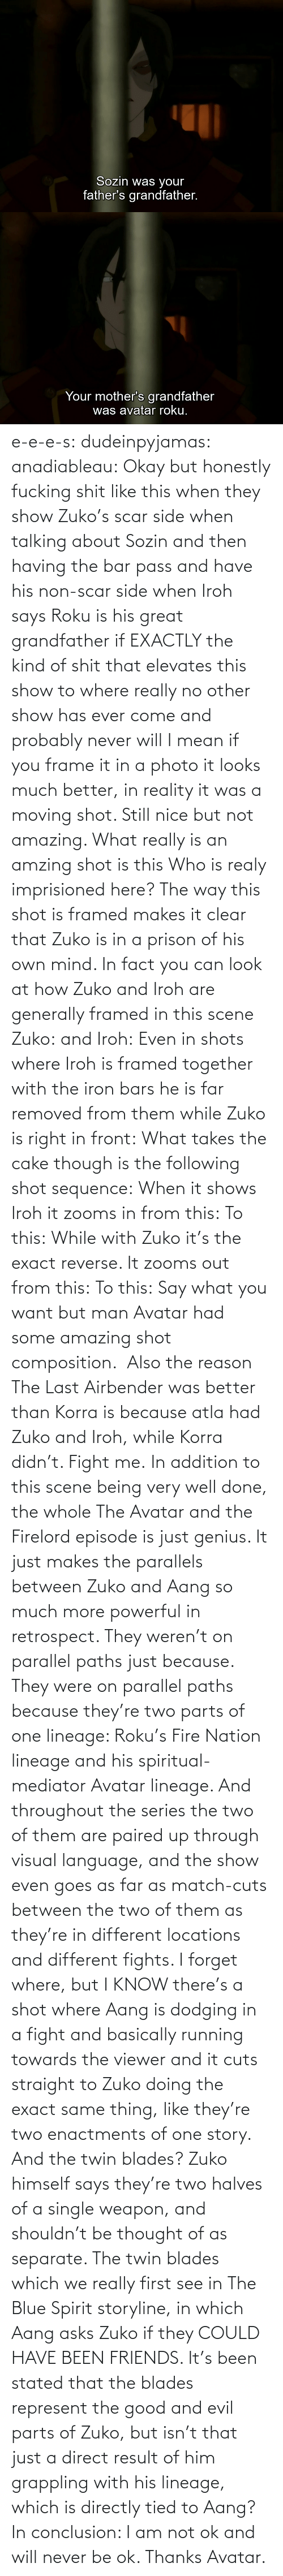 so much: e-e-e-s: dudeinpyjamas:   anadiableau: Okay but honestly fucking shit like this when they show Zuko's scar side when talking about Sozin and then having the bar pass and have his non-scar side when Iroh says Roku is his great grandfather if EXACTLY the kind of shit that elevates this show to where really no other show has ever come and probably never will I mean if you frame it in a photo it looks much better, in reality it was a moving shot. Still nice but not amazing. What really is an amzing shot is this Who is realy imprisioned here? The way this shot is framed makes it clear that Zuko is in a prison of his own mind. In fact you can look at how Zuko and Iroh are generally framed in this scene Zuko: and Iroh: Even in shots where Iroh is framed together with the iron bars he is far removed from them while Zuko is right in front:  What takes the cake though is the following shot sequence: When it shows Iroh it zooms in from this: To this: While with Zuko it's the exact reverse. It zooms out from this: To this: Say what you want but man Avatar had some amazing shot composition.   Also the reason The Last Airbender was better than Korra is because atla had Zuko and Iroh, while Korra didn't. Fight me.    In addition to this scene being very well done, the whole The Avatar and the Firelord episode is just genius.  It just makes the parallels between Zuko and Aang so much more powerful in retrospect.  They weren't on parallel paths just because.  They were on parallel paths because they're two parts of one lineage: Roku's Fire Nation lineage and his spiritual-mediator Avatar lineage.  And throughout the series the two of them are paired up through visual language, and the show even goes as far as match-cuts between the two of them as they're in different locations and different fights.  I forget where, but I KNOW there's a shot where Aang is dodging in a fight and basically running towards the viewer and it cuts straight to Zuko doing the exact same thing, like they're two enactments of one story.   And the twin blades?  Zuko himself says they're two halves of a single weapon, and shouldn't be thought of as separate.  The twin blades which we really first see in The Blue Spirit storyline, in which Aang asks Zuko if they COULD HAVE BEEN FRIENDS.  It's been stated that the blades represent the good and evil parts of Zuko, but isn't that just a direct result of him grappling with his lineage, which is directly tied to Aang? In conclusion: I am not ok and will never be ok.  Thanks Avatar.